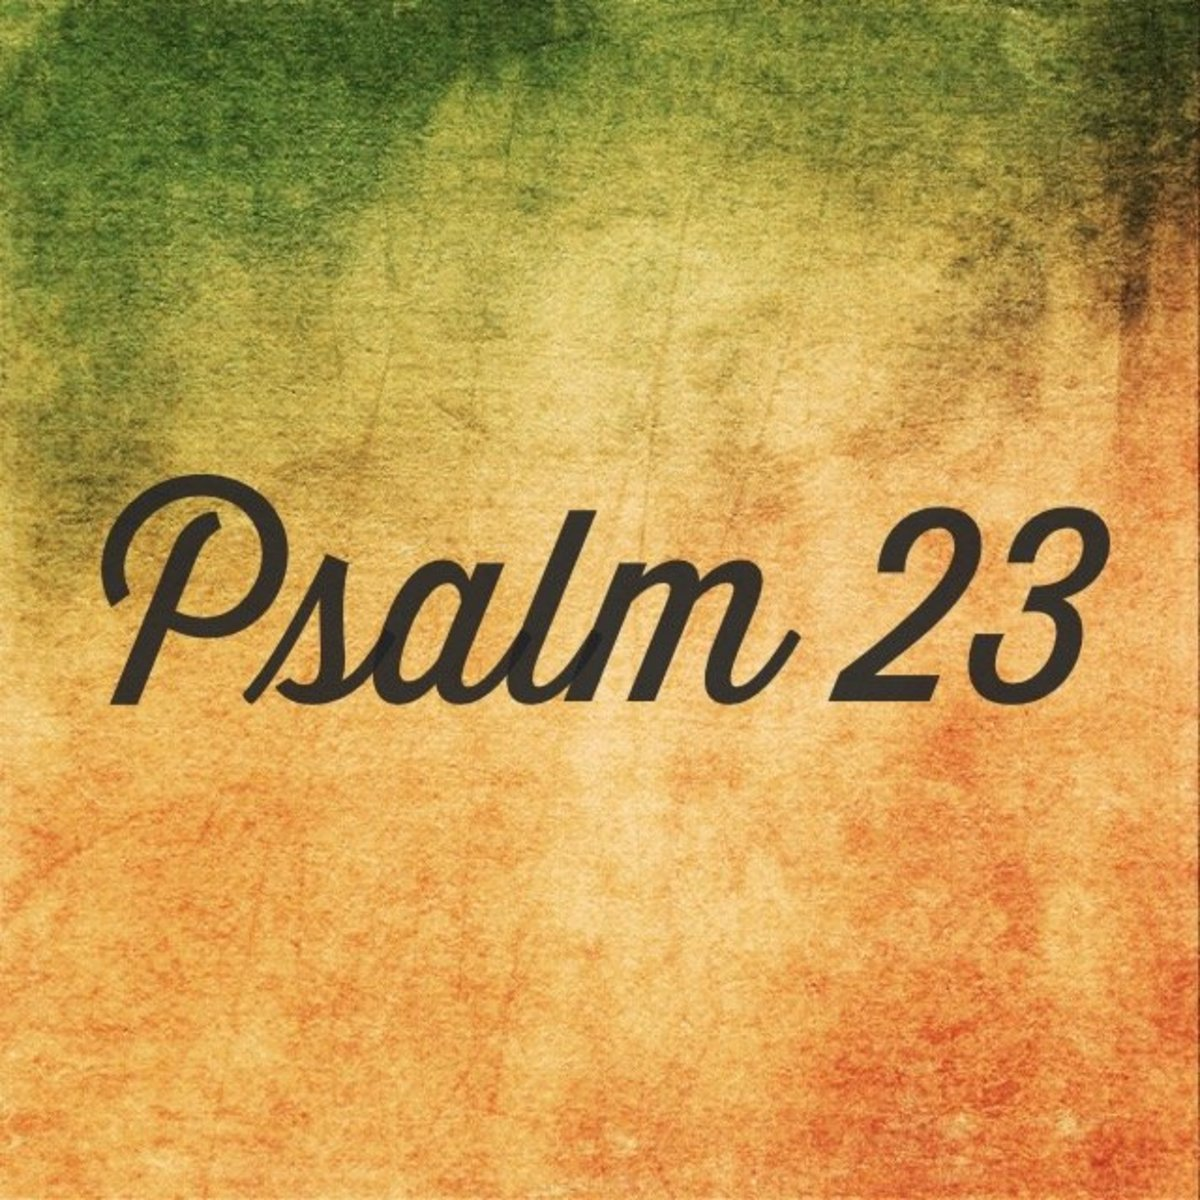 Psalm 23: A Sheep's Testimony